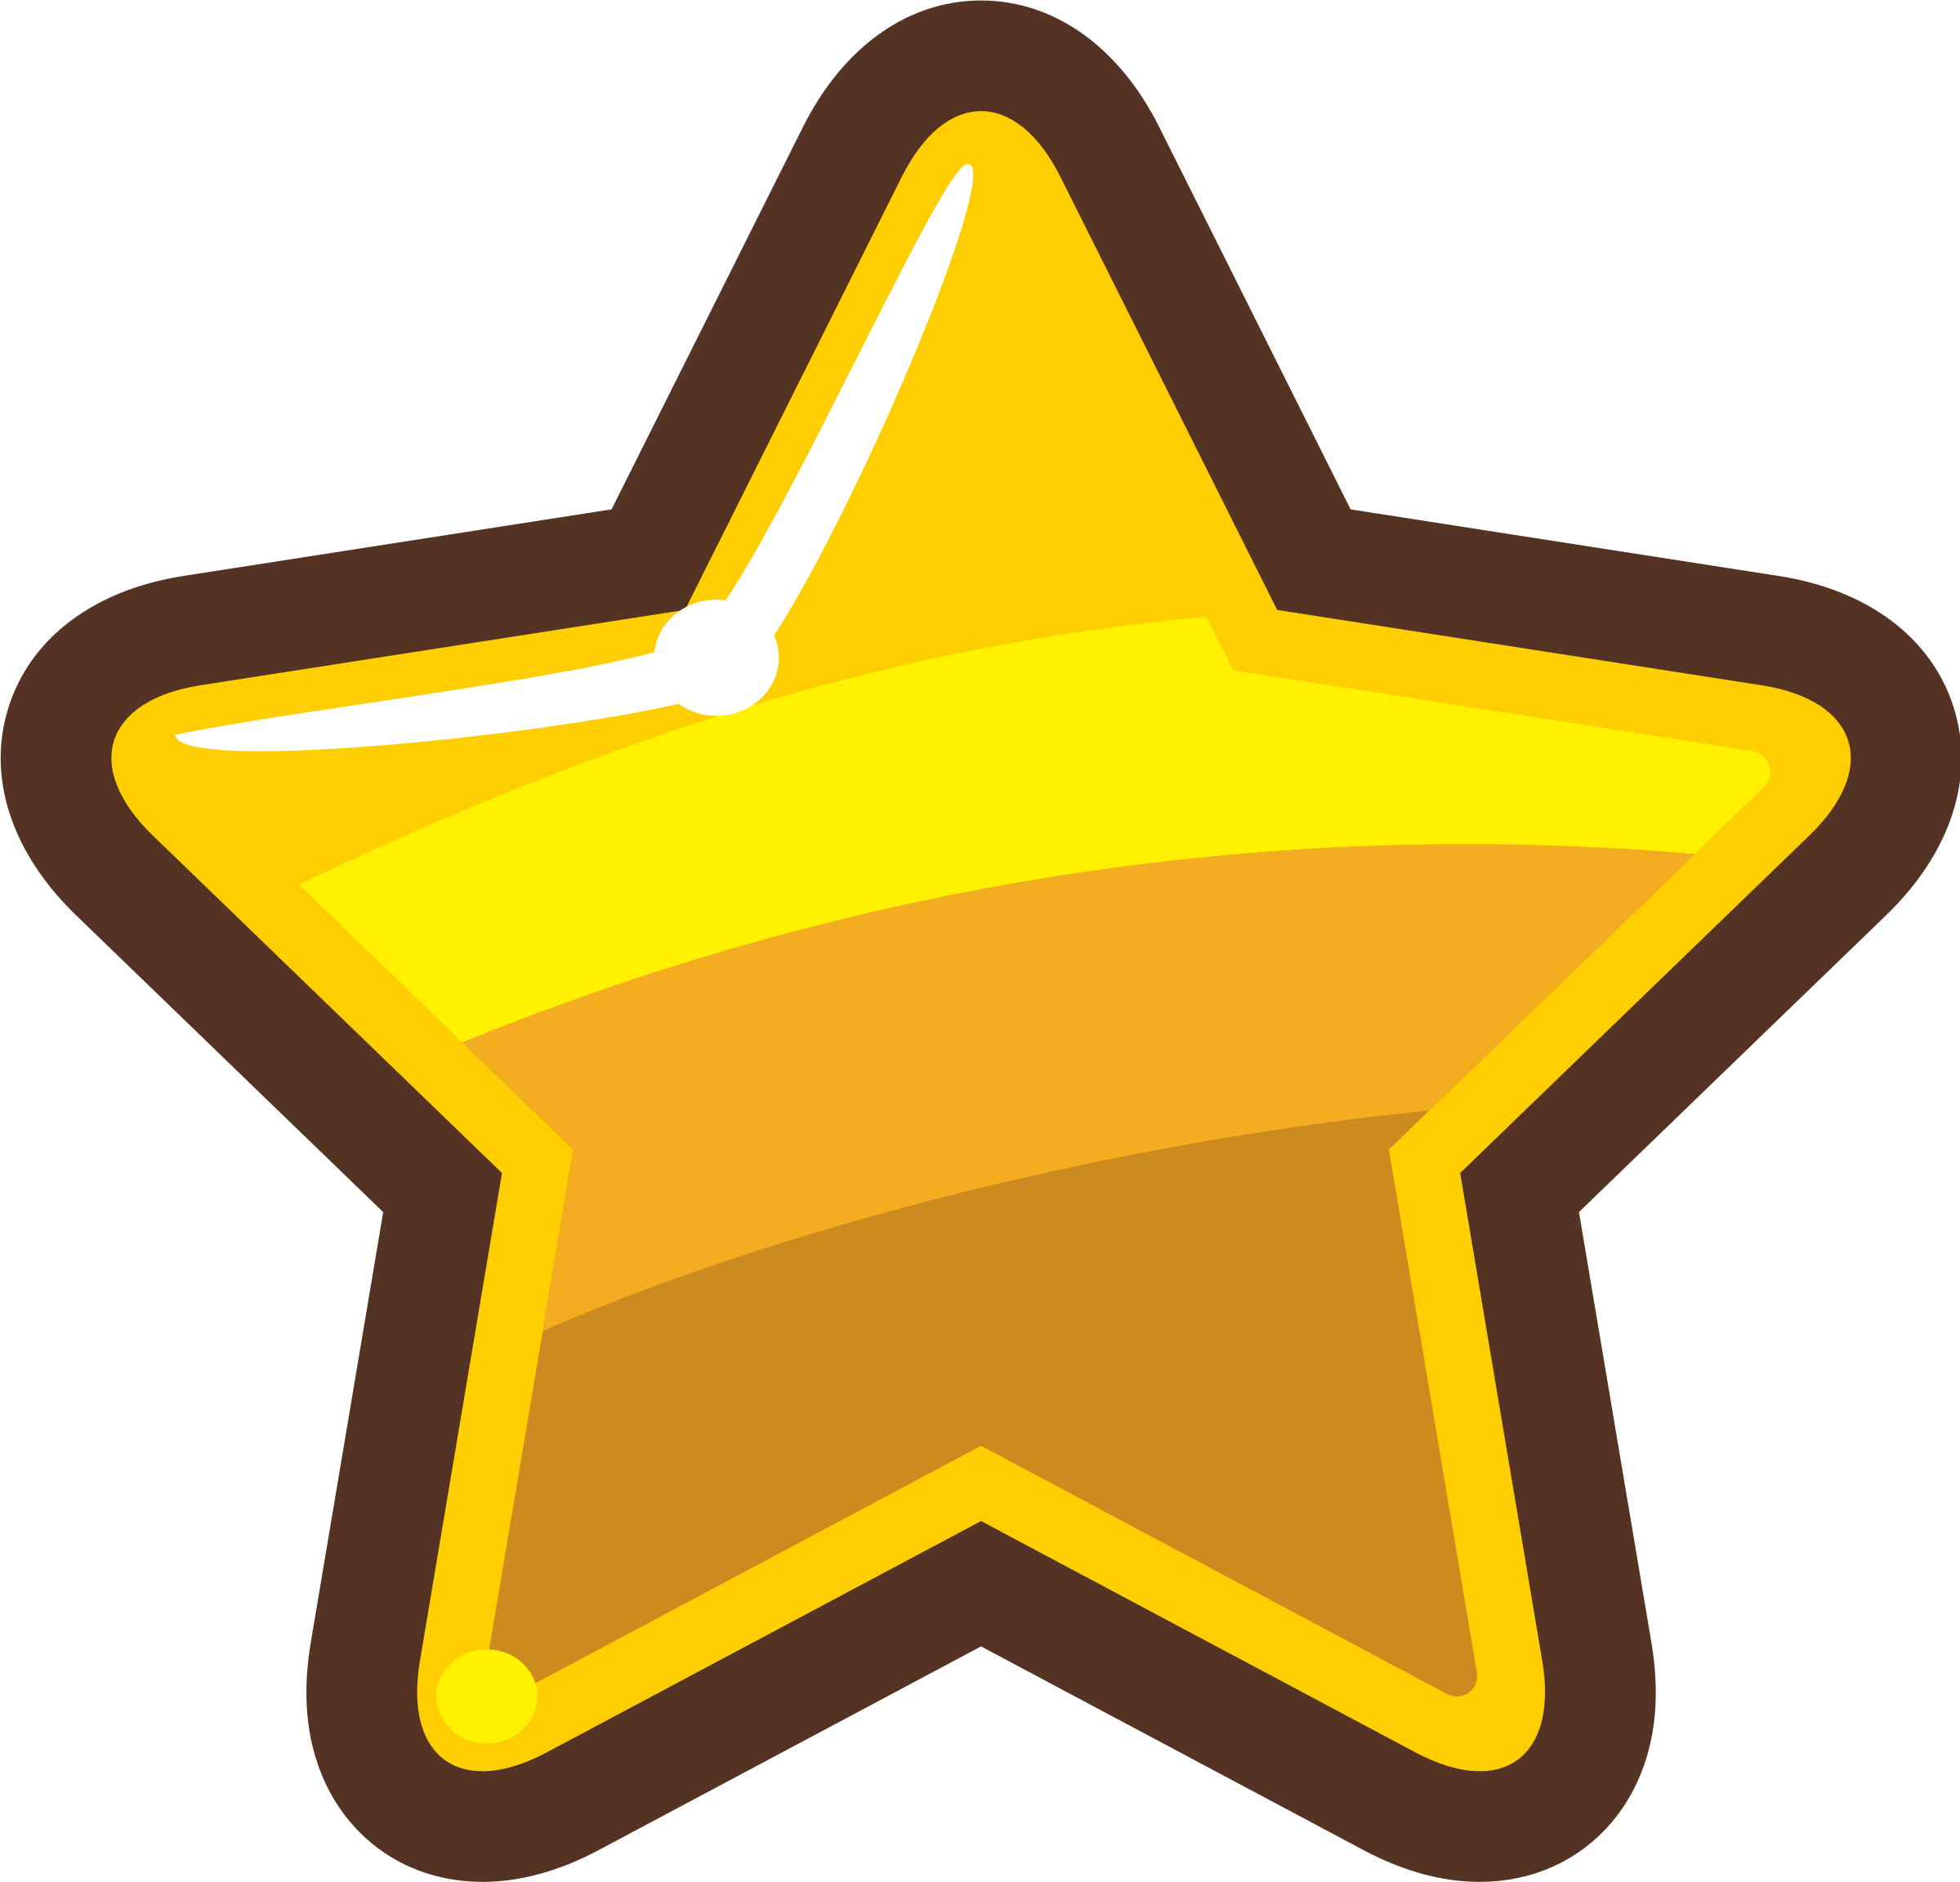 Star cartoon clipart clipart library library Cartoon Gold Star Icons PNG - Free PNG and Icons Downloads clipart library library